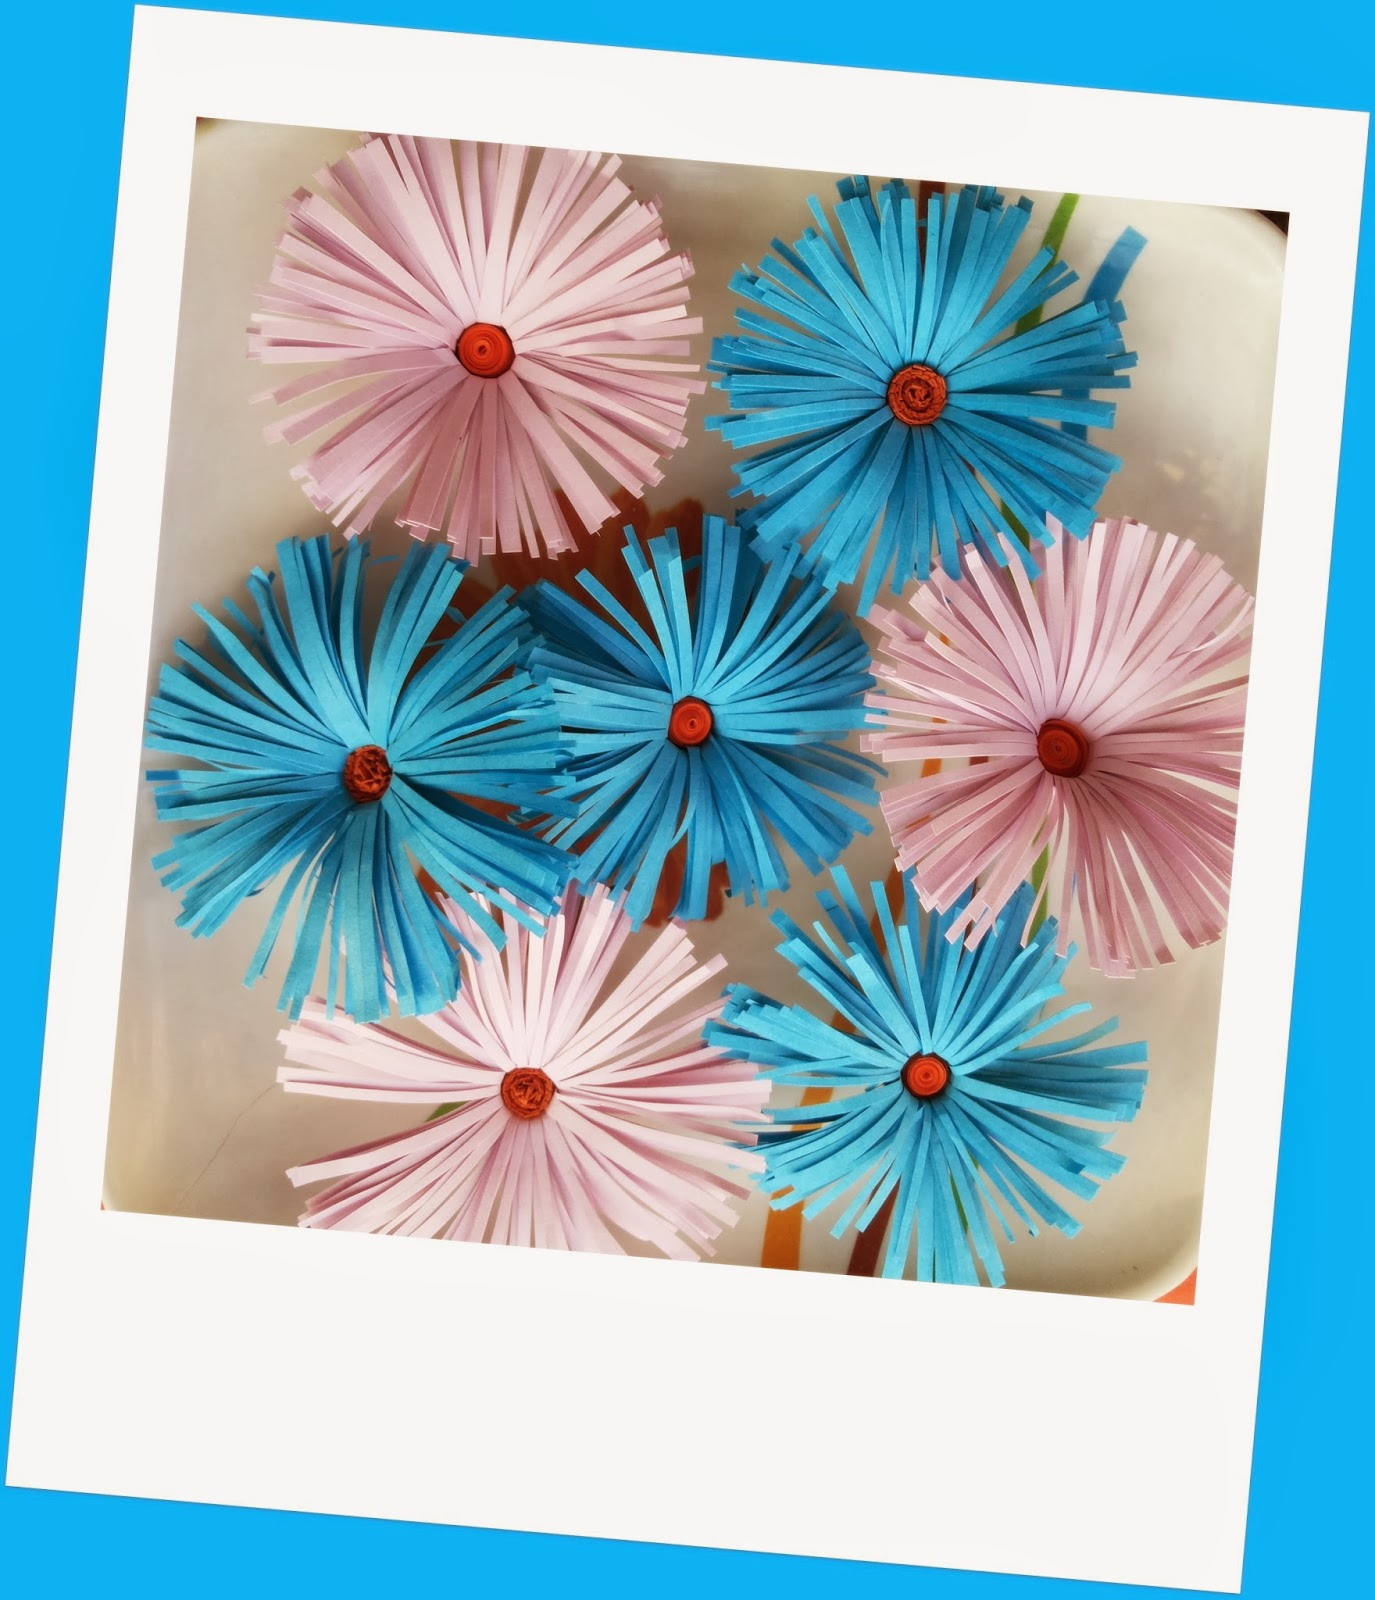 http://quillingzone.blogspot.tw/2014/02/fringed-flowers-in-blue-lavender.html